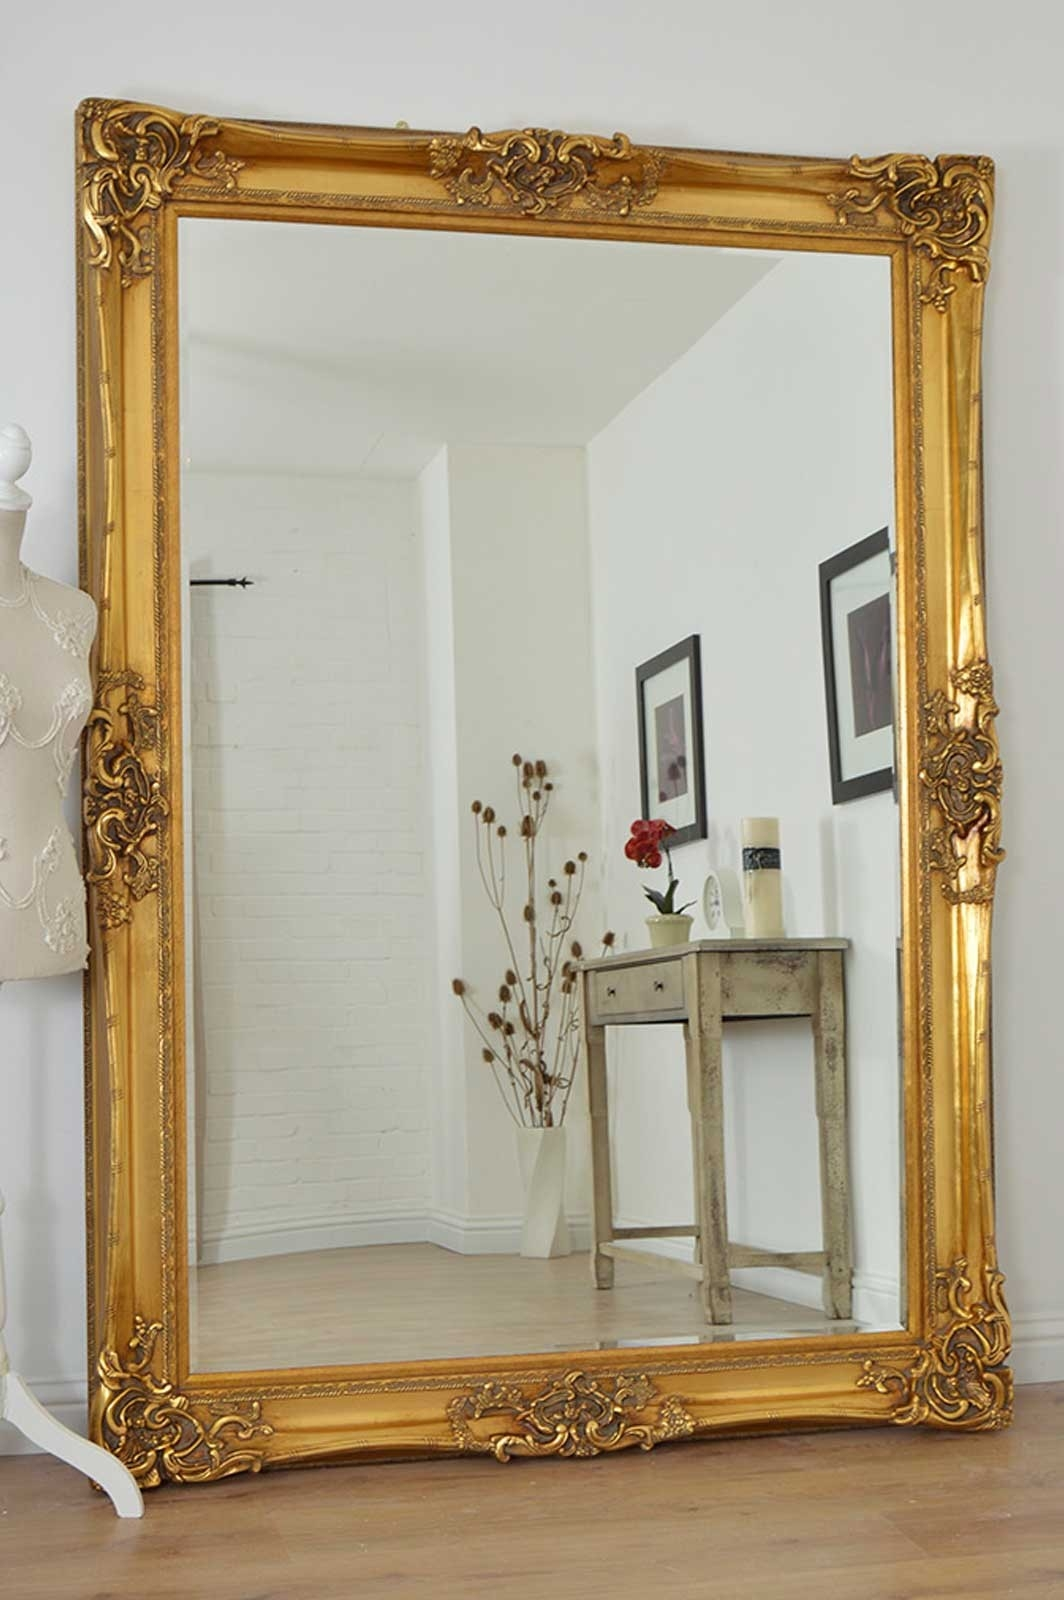 Large Gold Ornate Wall Mirror Large Gold Ornate Wall Mirror large gold very ornate antique design wall mirror 7ft x 5ft 213cm 1064 X 1600